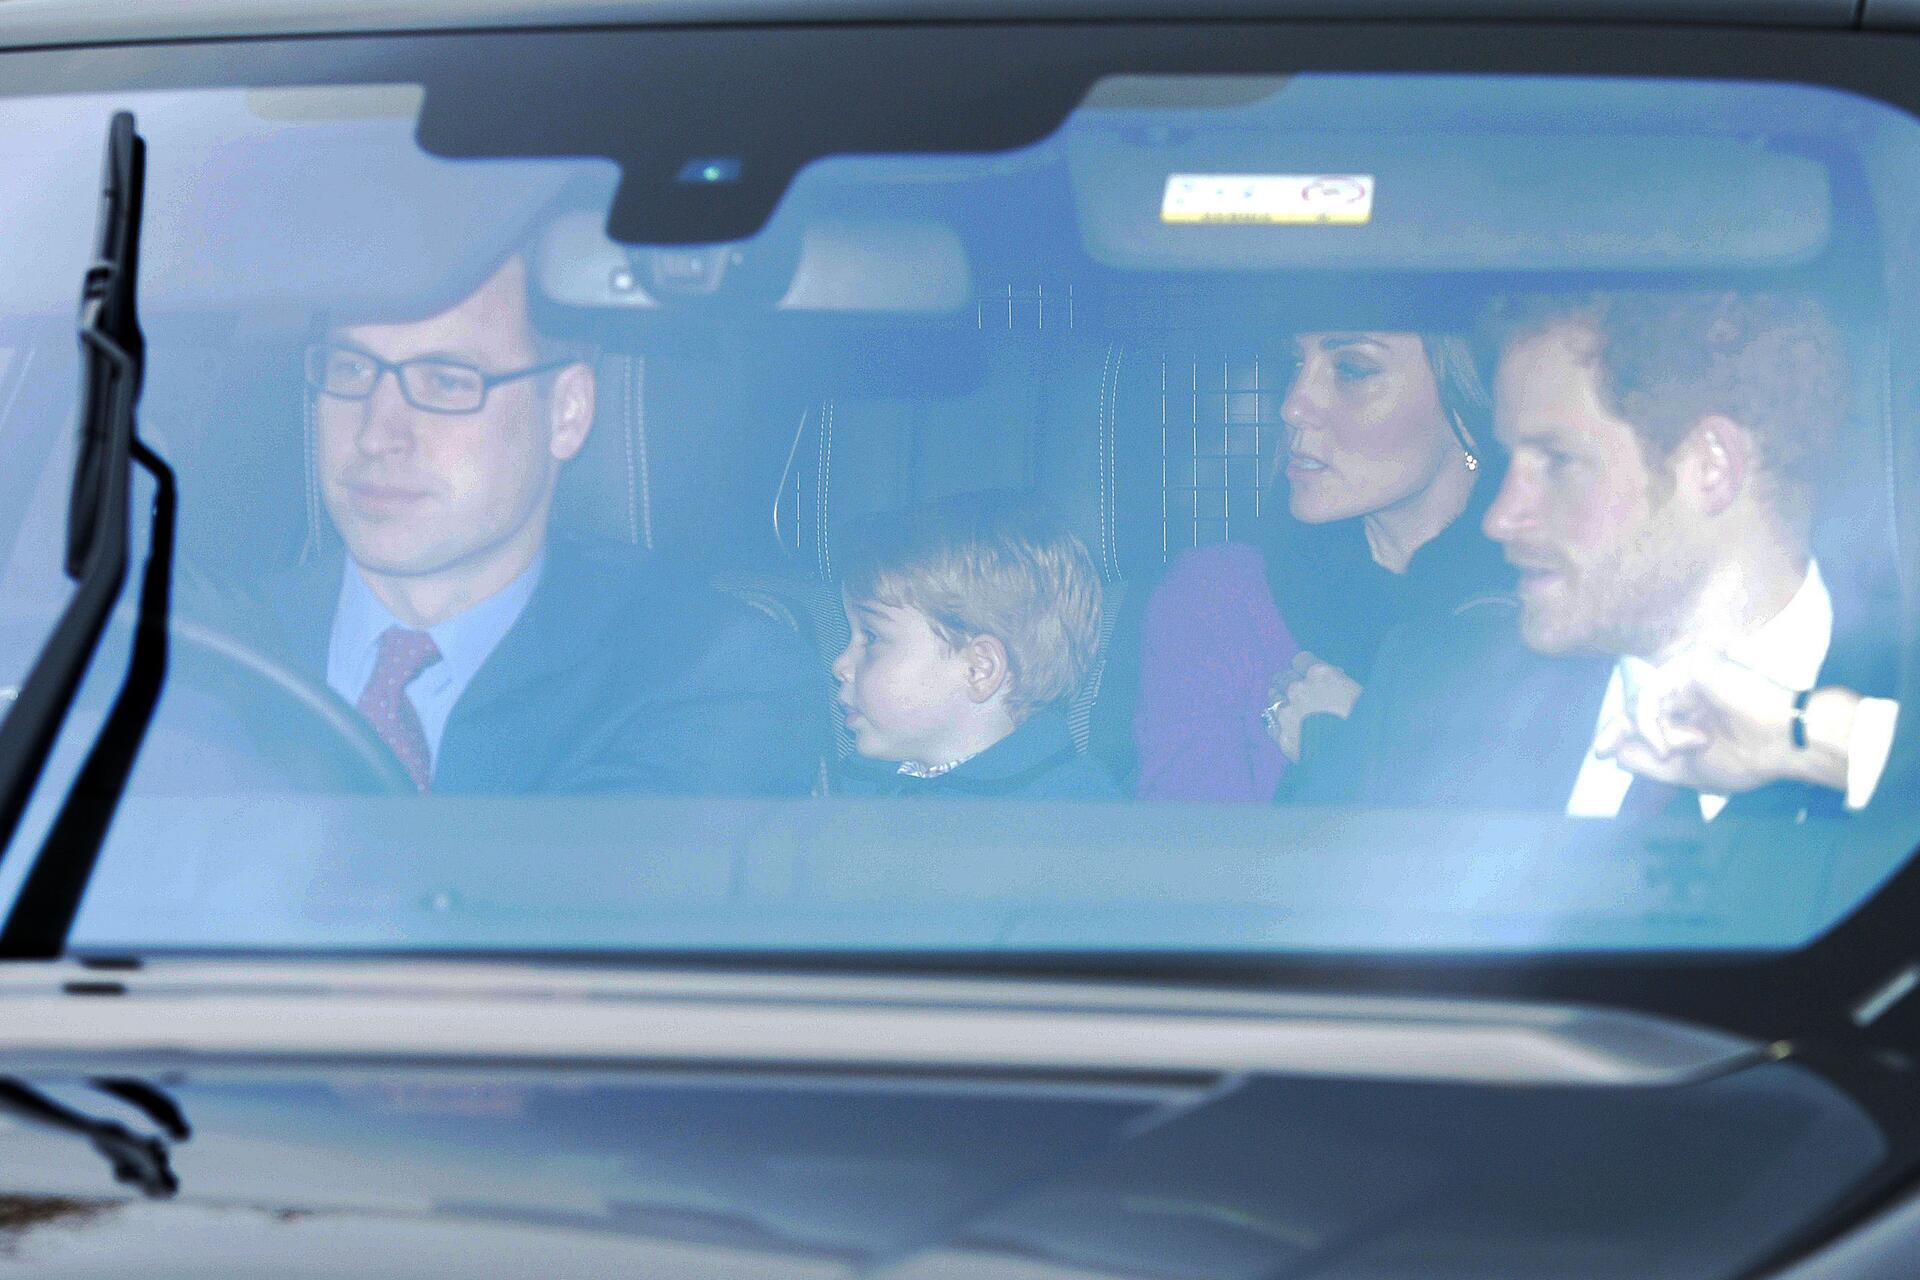 Bild zu Prinz William, Prinz Harry, Herzogin Kate, Prinz George, Auto